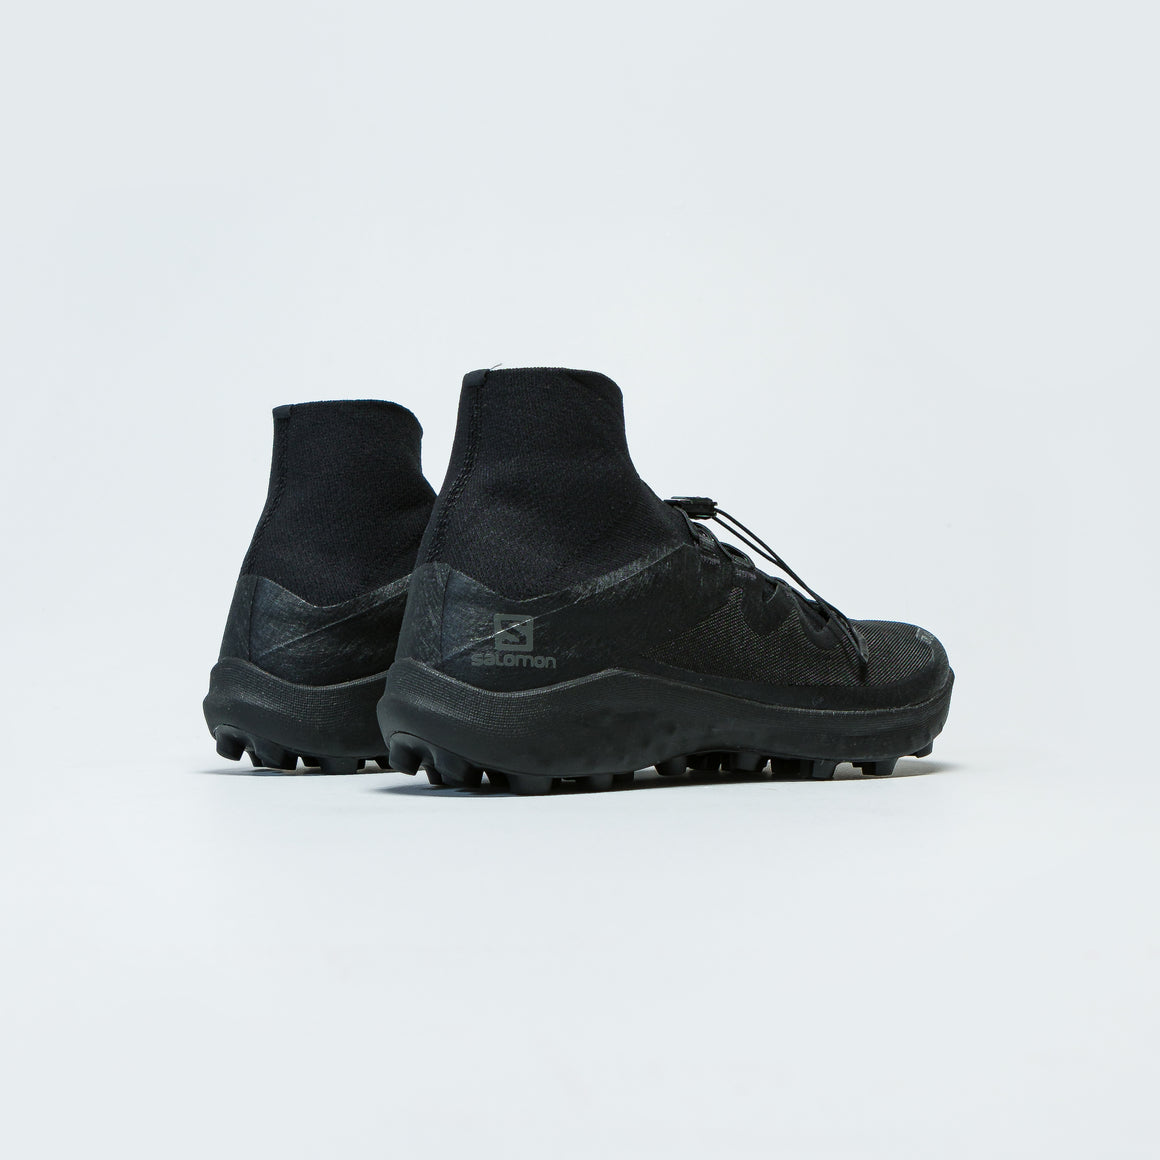 Salomon - S/Lab Cross Black LTD - Black/Black - Up There